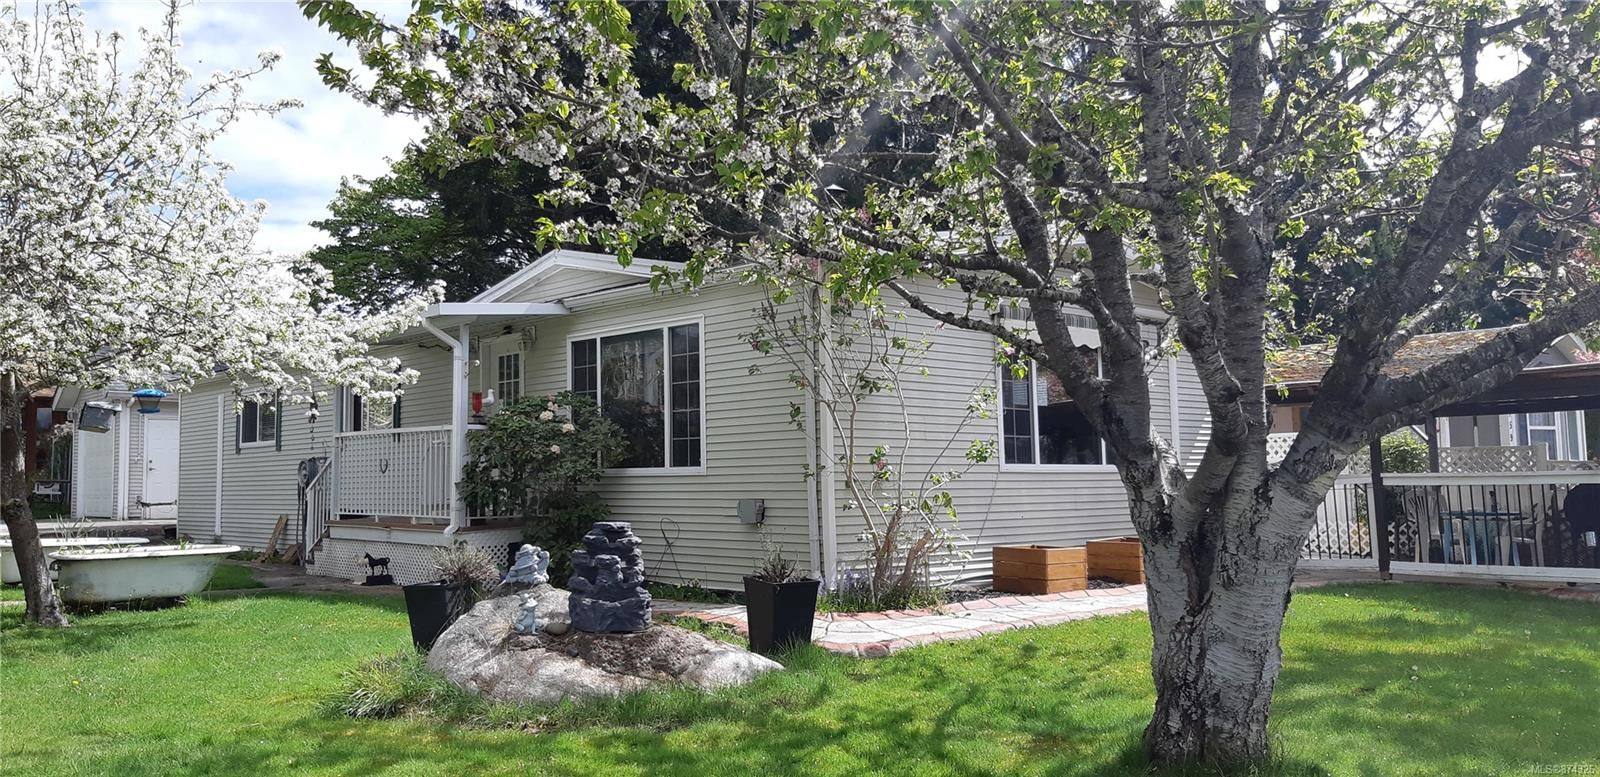 Main Photo: 2153 Stadacona Dr in : CV Comox (Town of) Manufactured Home for sale (Comox Valley)  : MLS®# 874326